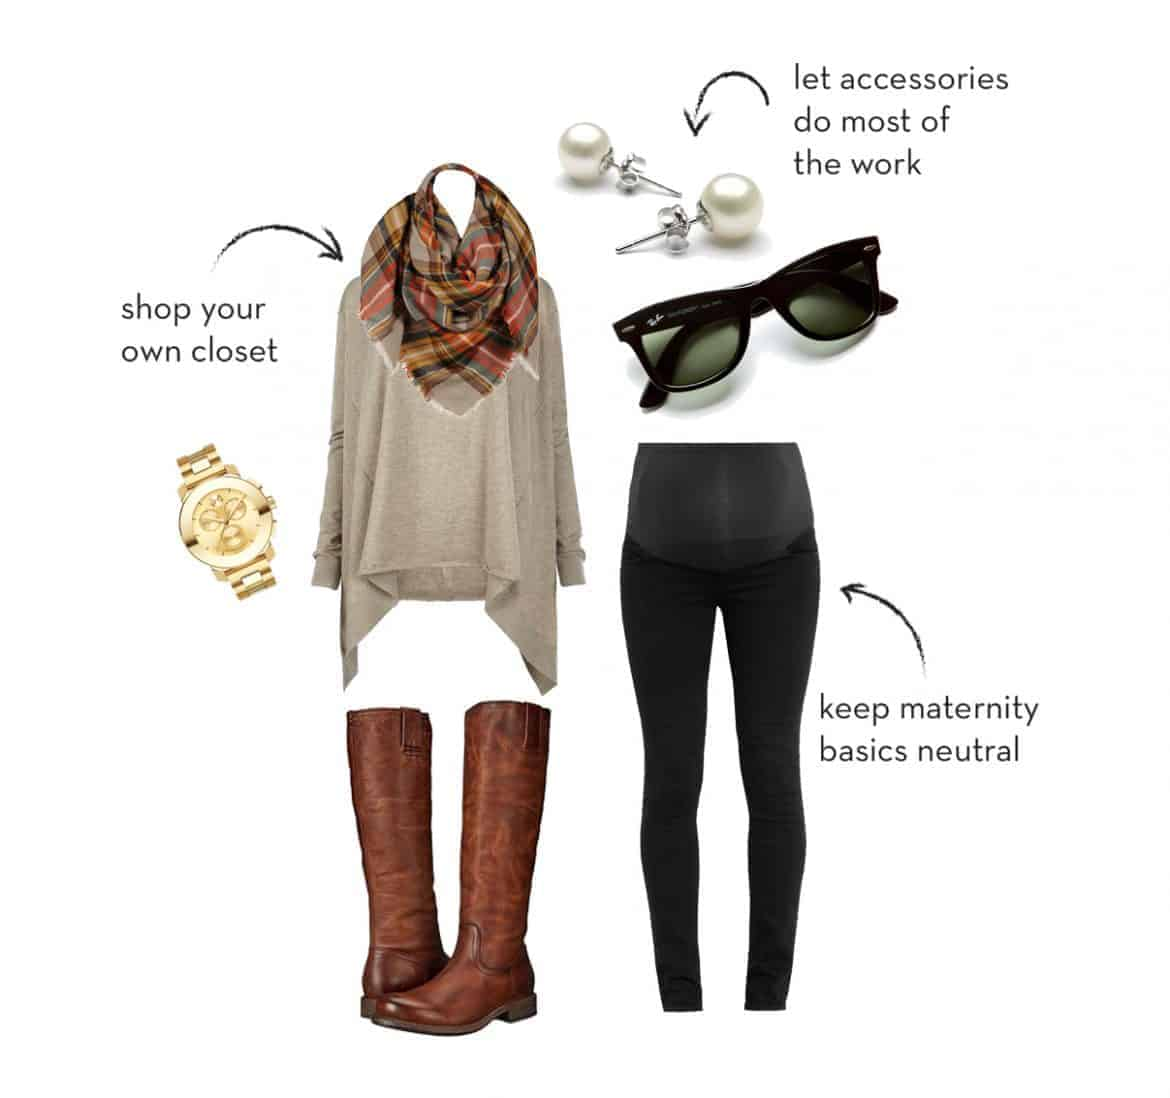 Great tips on building a kick ass maternity wardrobe that won't blow your budget. An essential clothing capsule for your pregnancy.